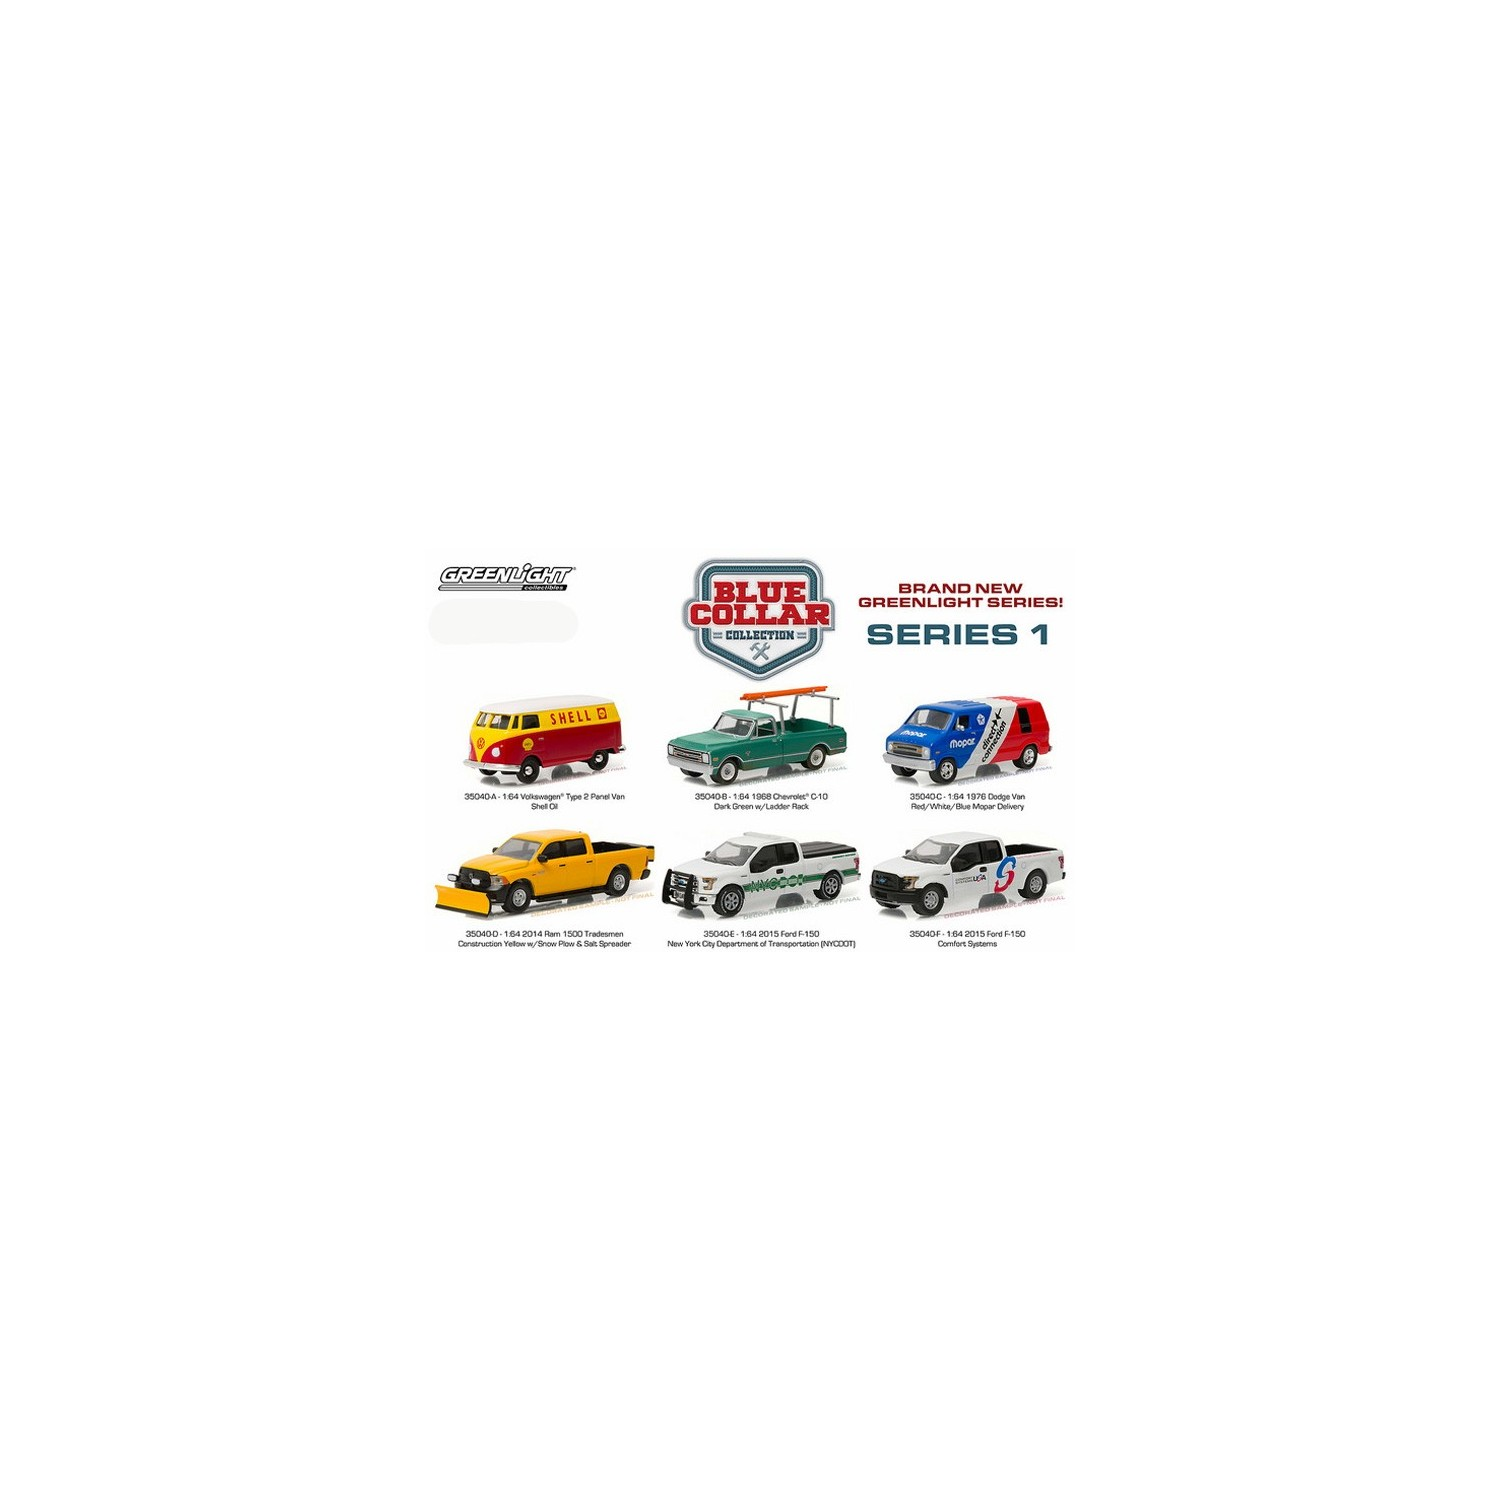 38 Hot Pursuit Series 22 Set as well 1715 together with 38 Hot Pursuit Series 22 Set further 94 Blue Collar Series 1 Six Truck Set further  on diecast promotions trucks 1 64